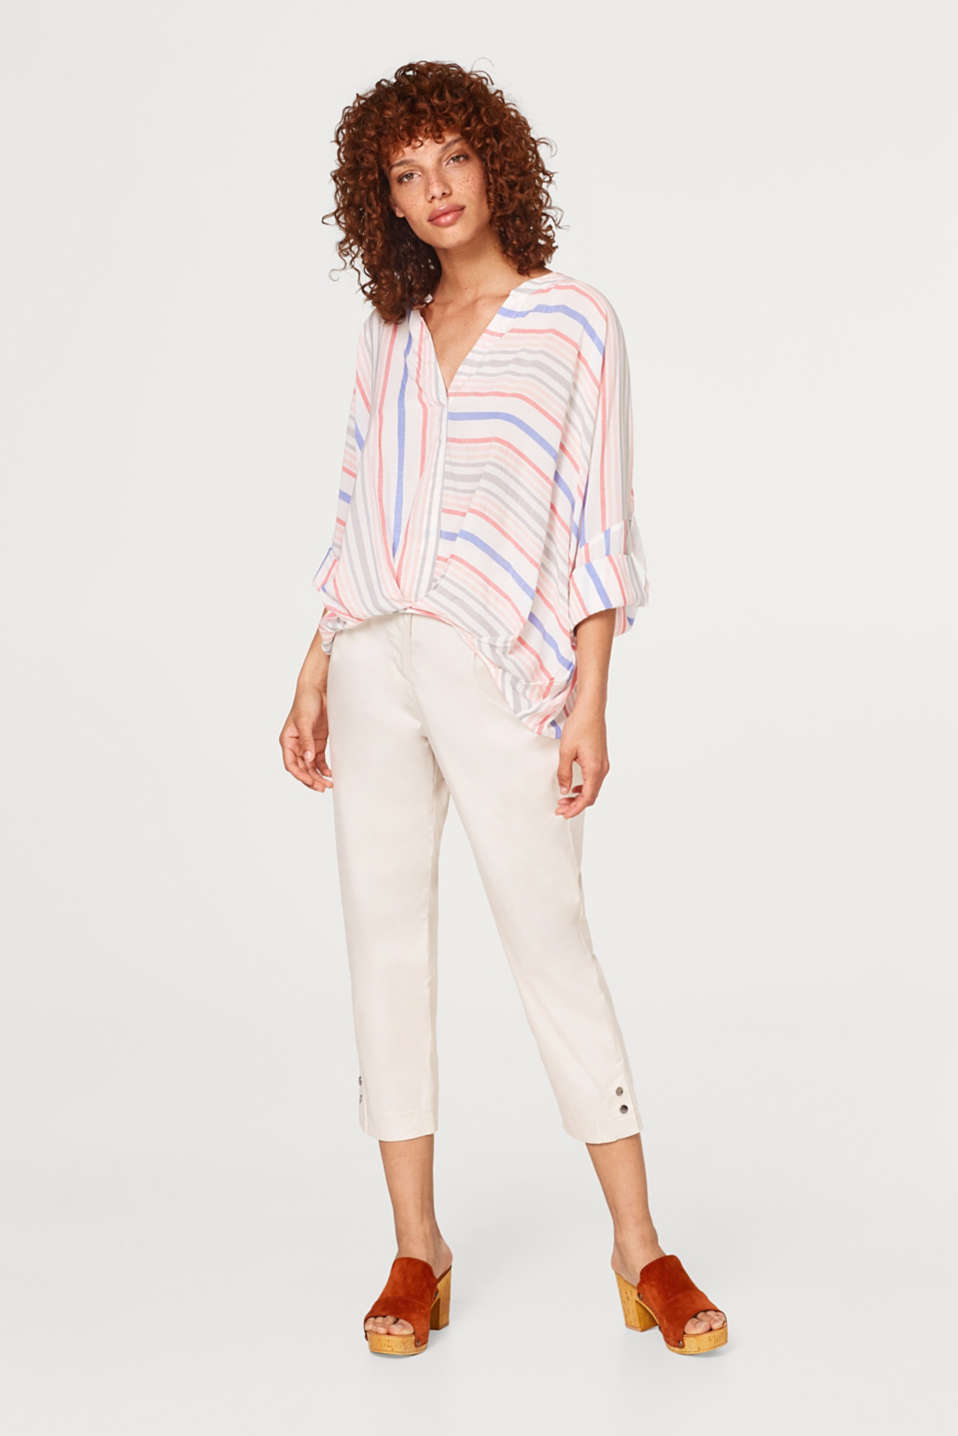 Draped blouse with stripes and turn-up sleeves